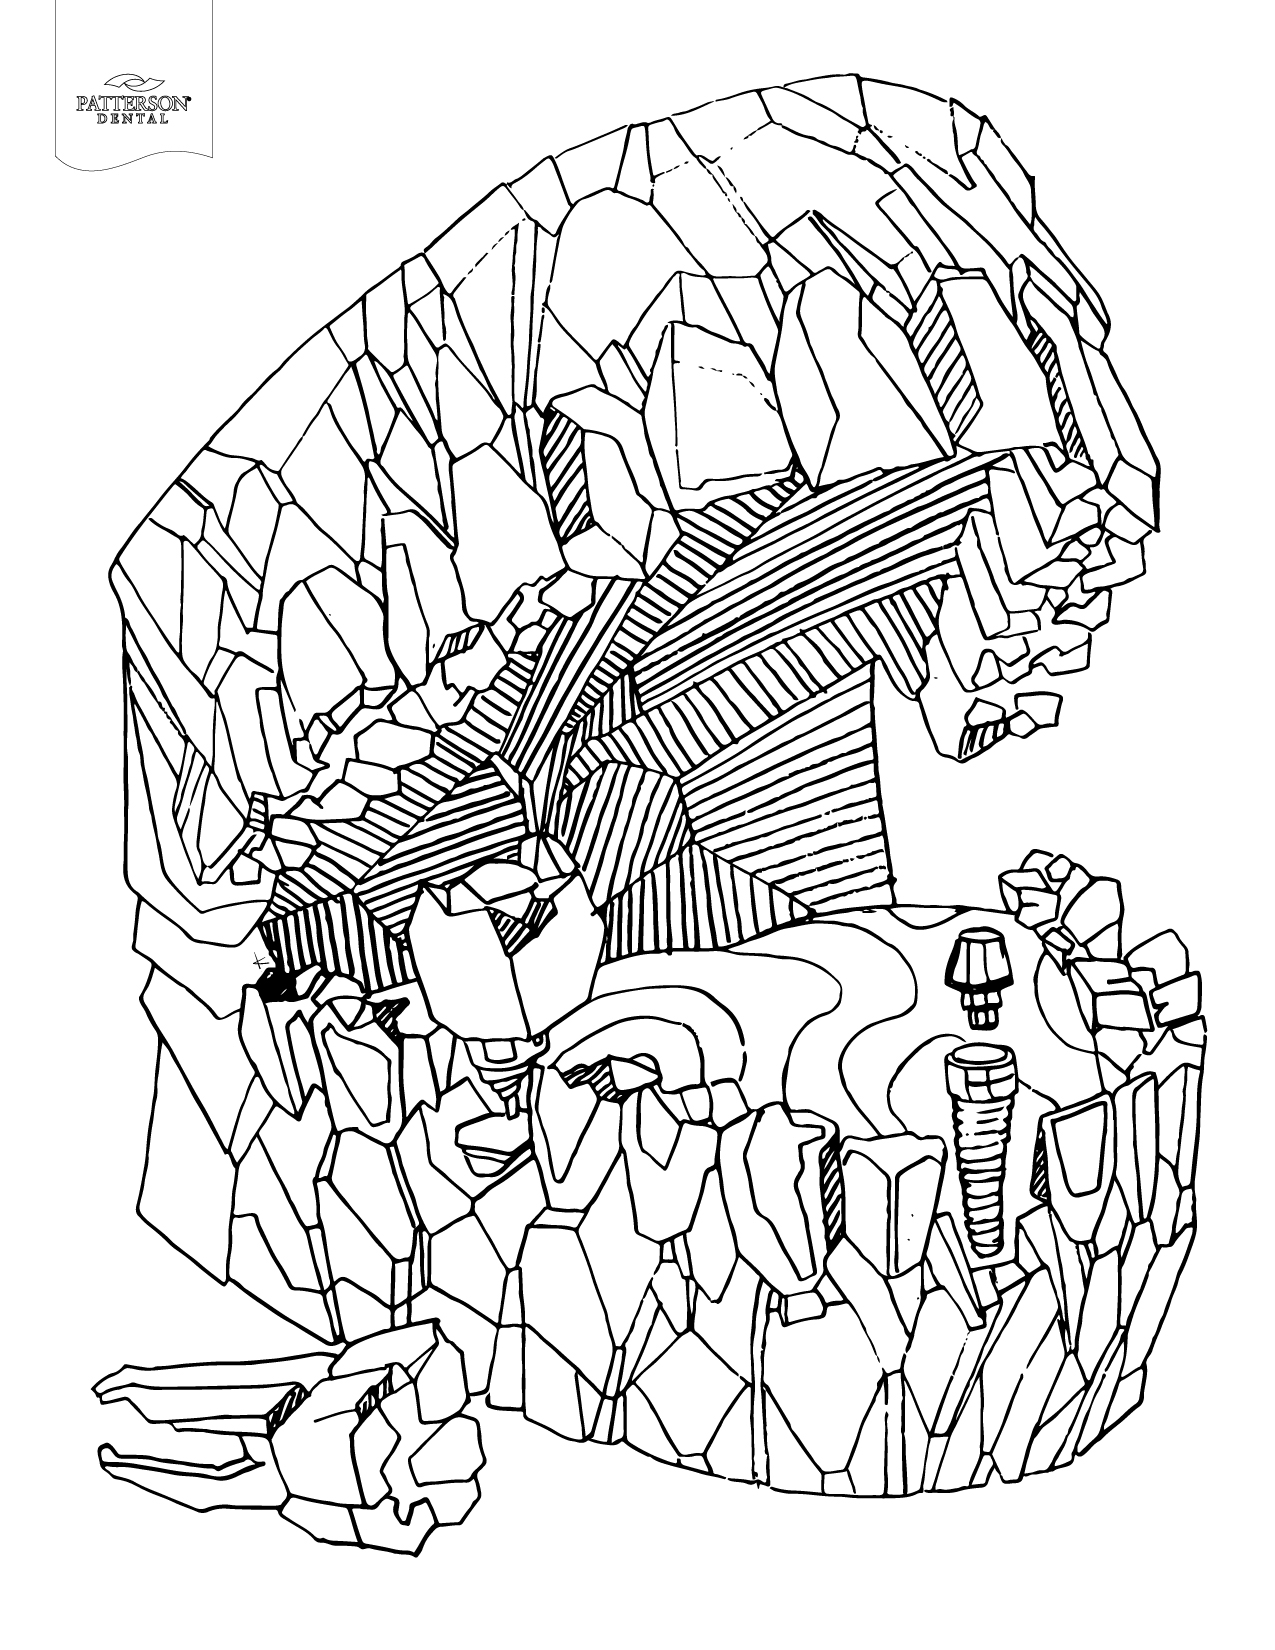 aduly coloring pages - photo#6